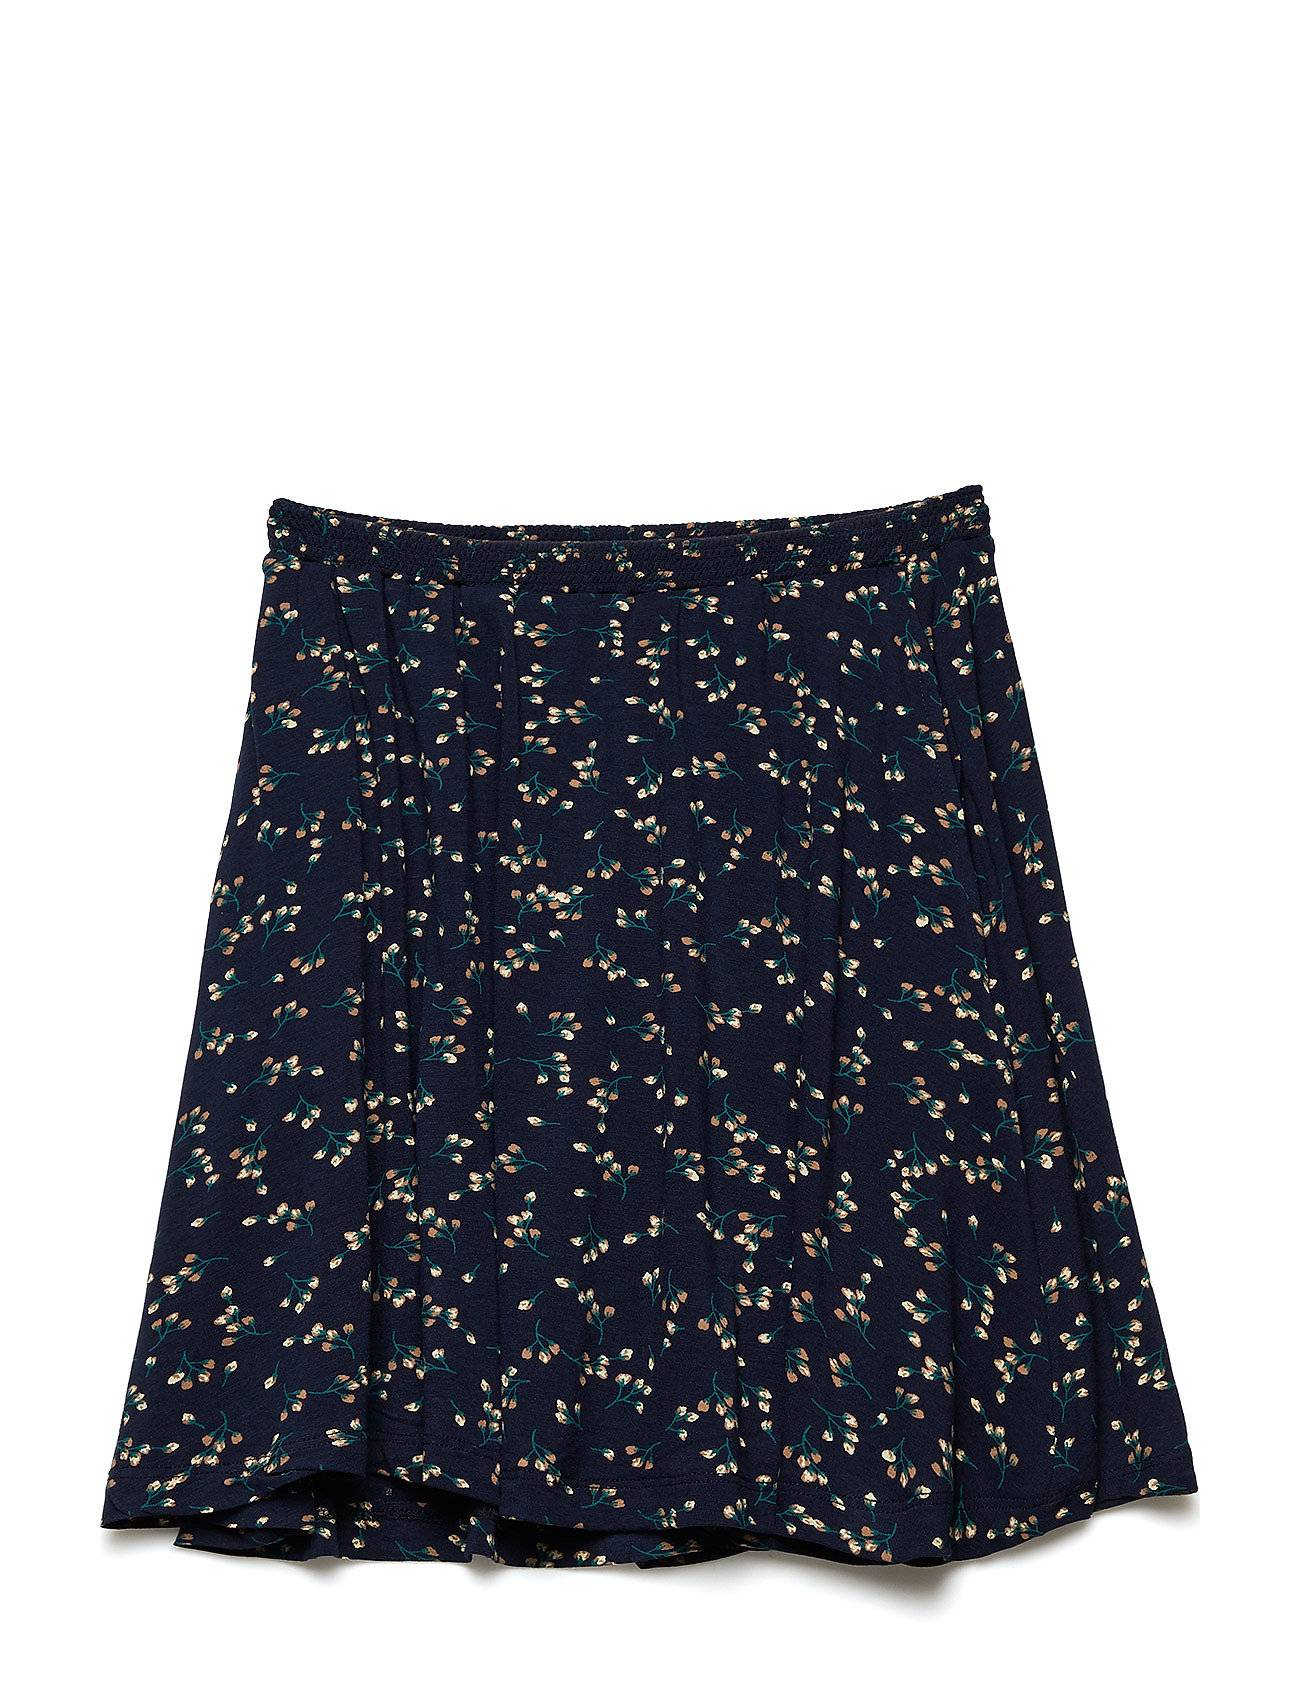 The New Isabella Skirt